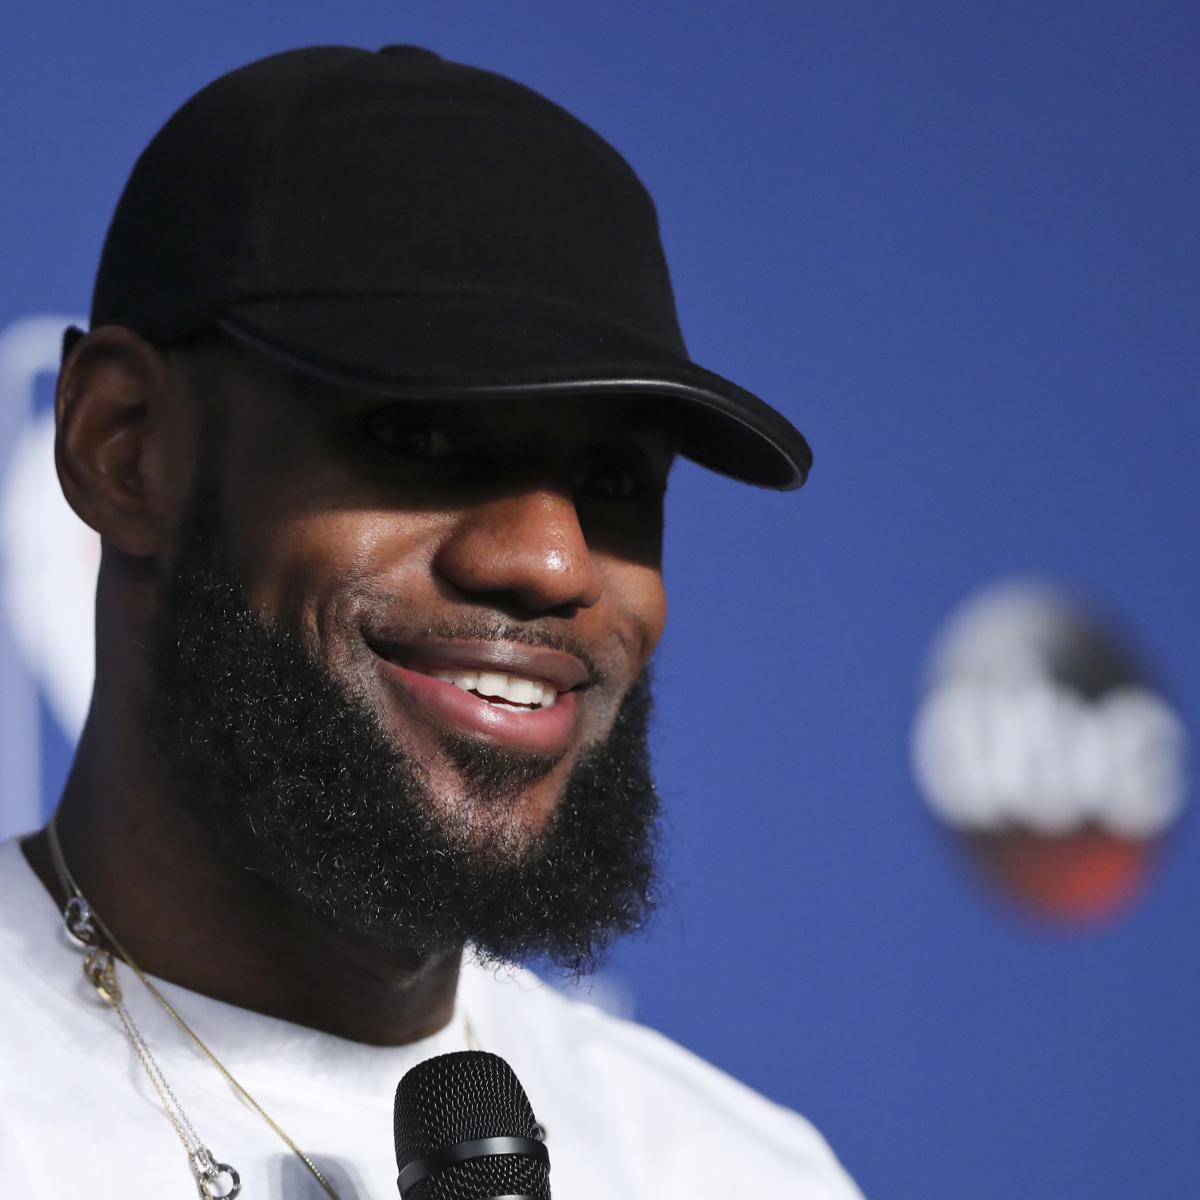 LeBron James 'King of LA' Mural Vandalized After Fan Offers Money to Alter It